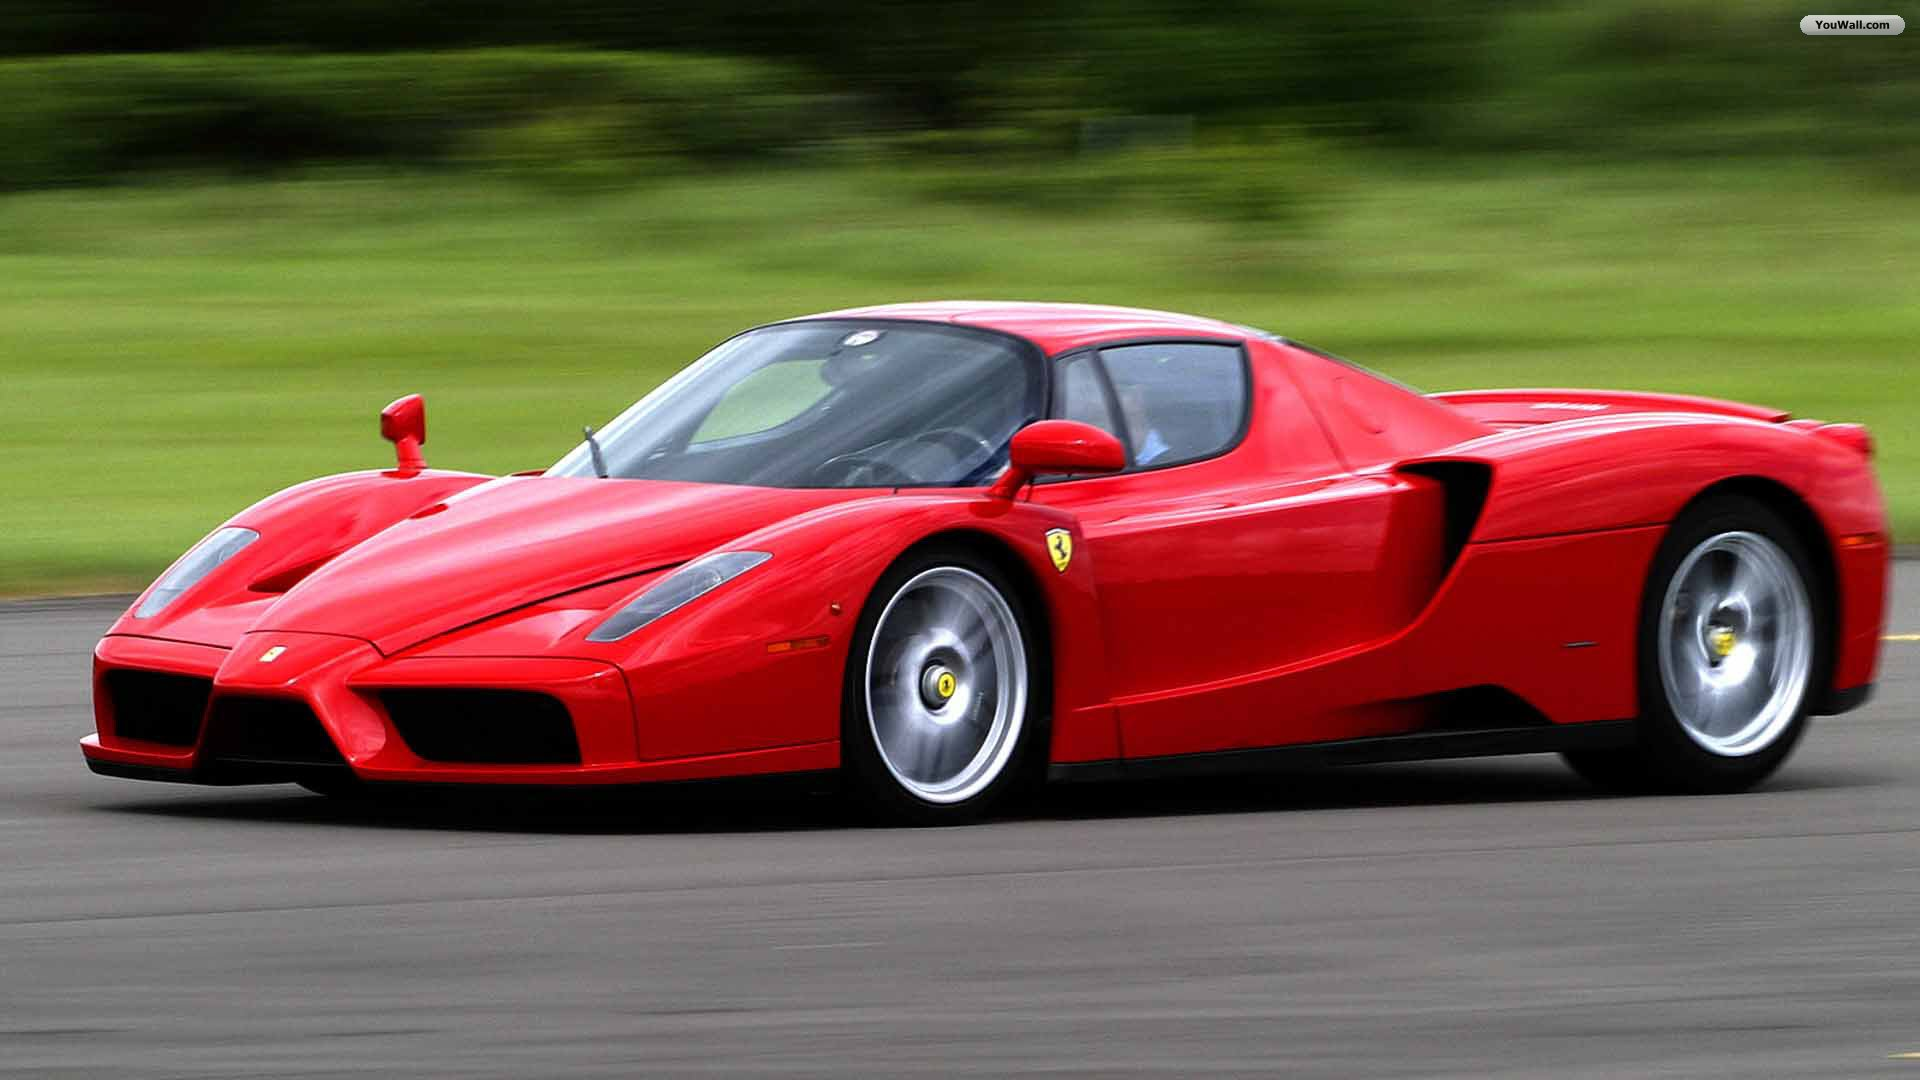 Pictures of ferrari enzo #1